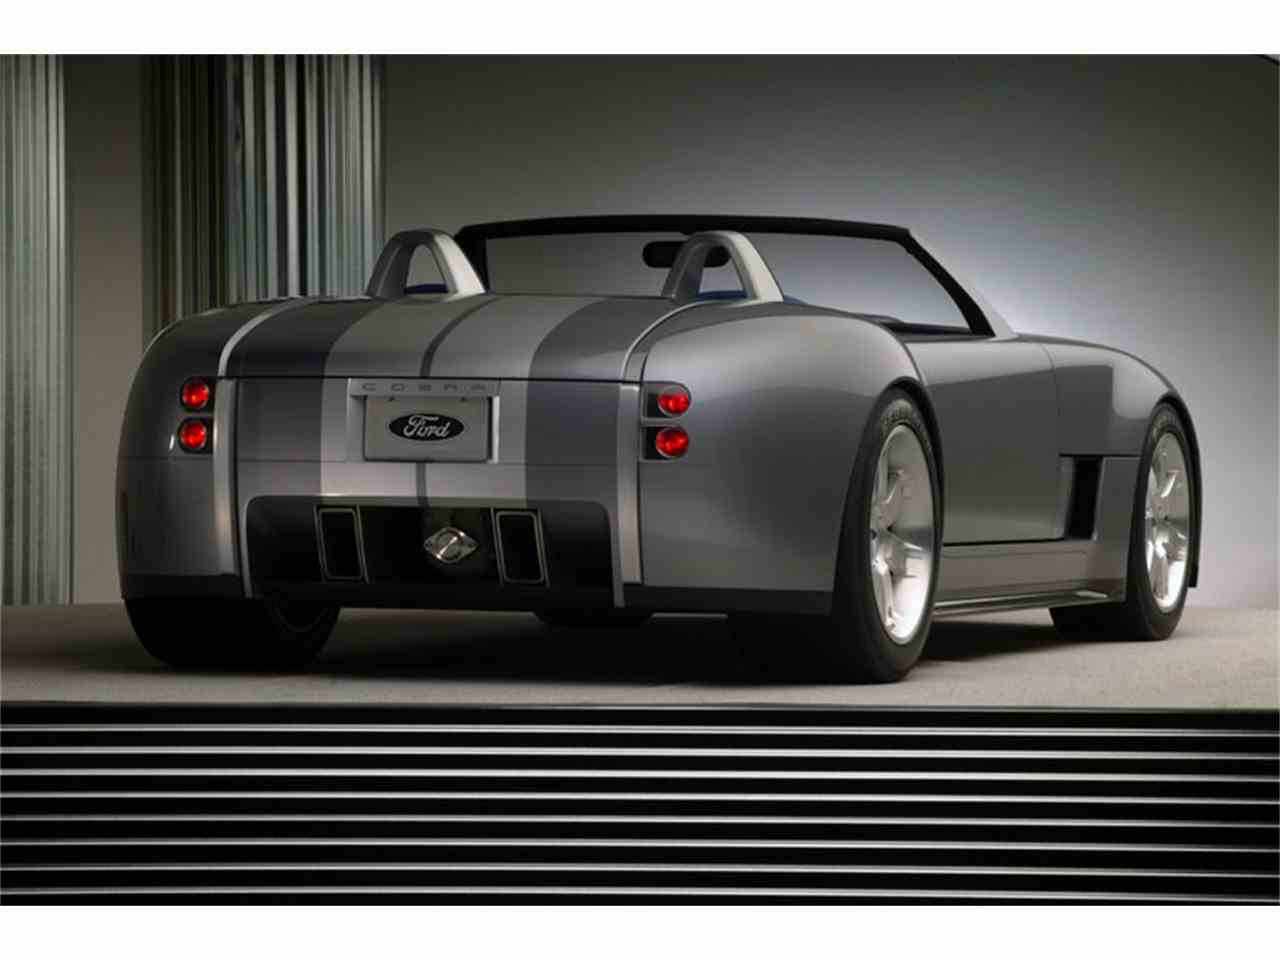 2004 ford shelby cobra concept car for sale classiccars for International motor cars greensboro nc